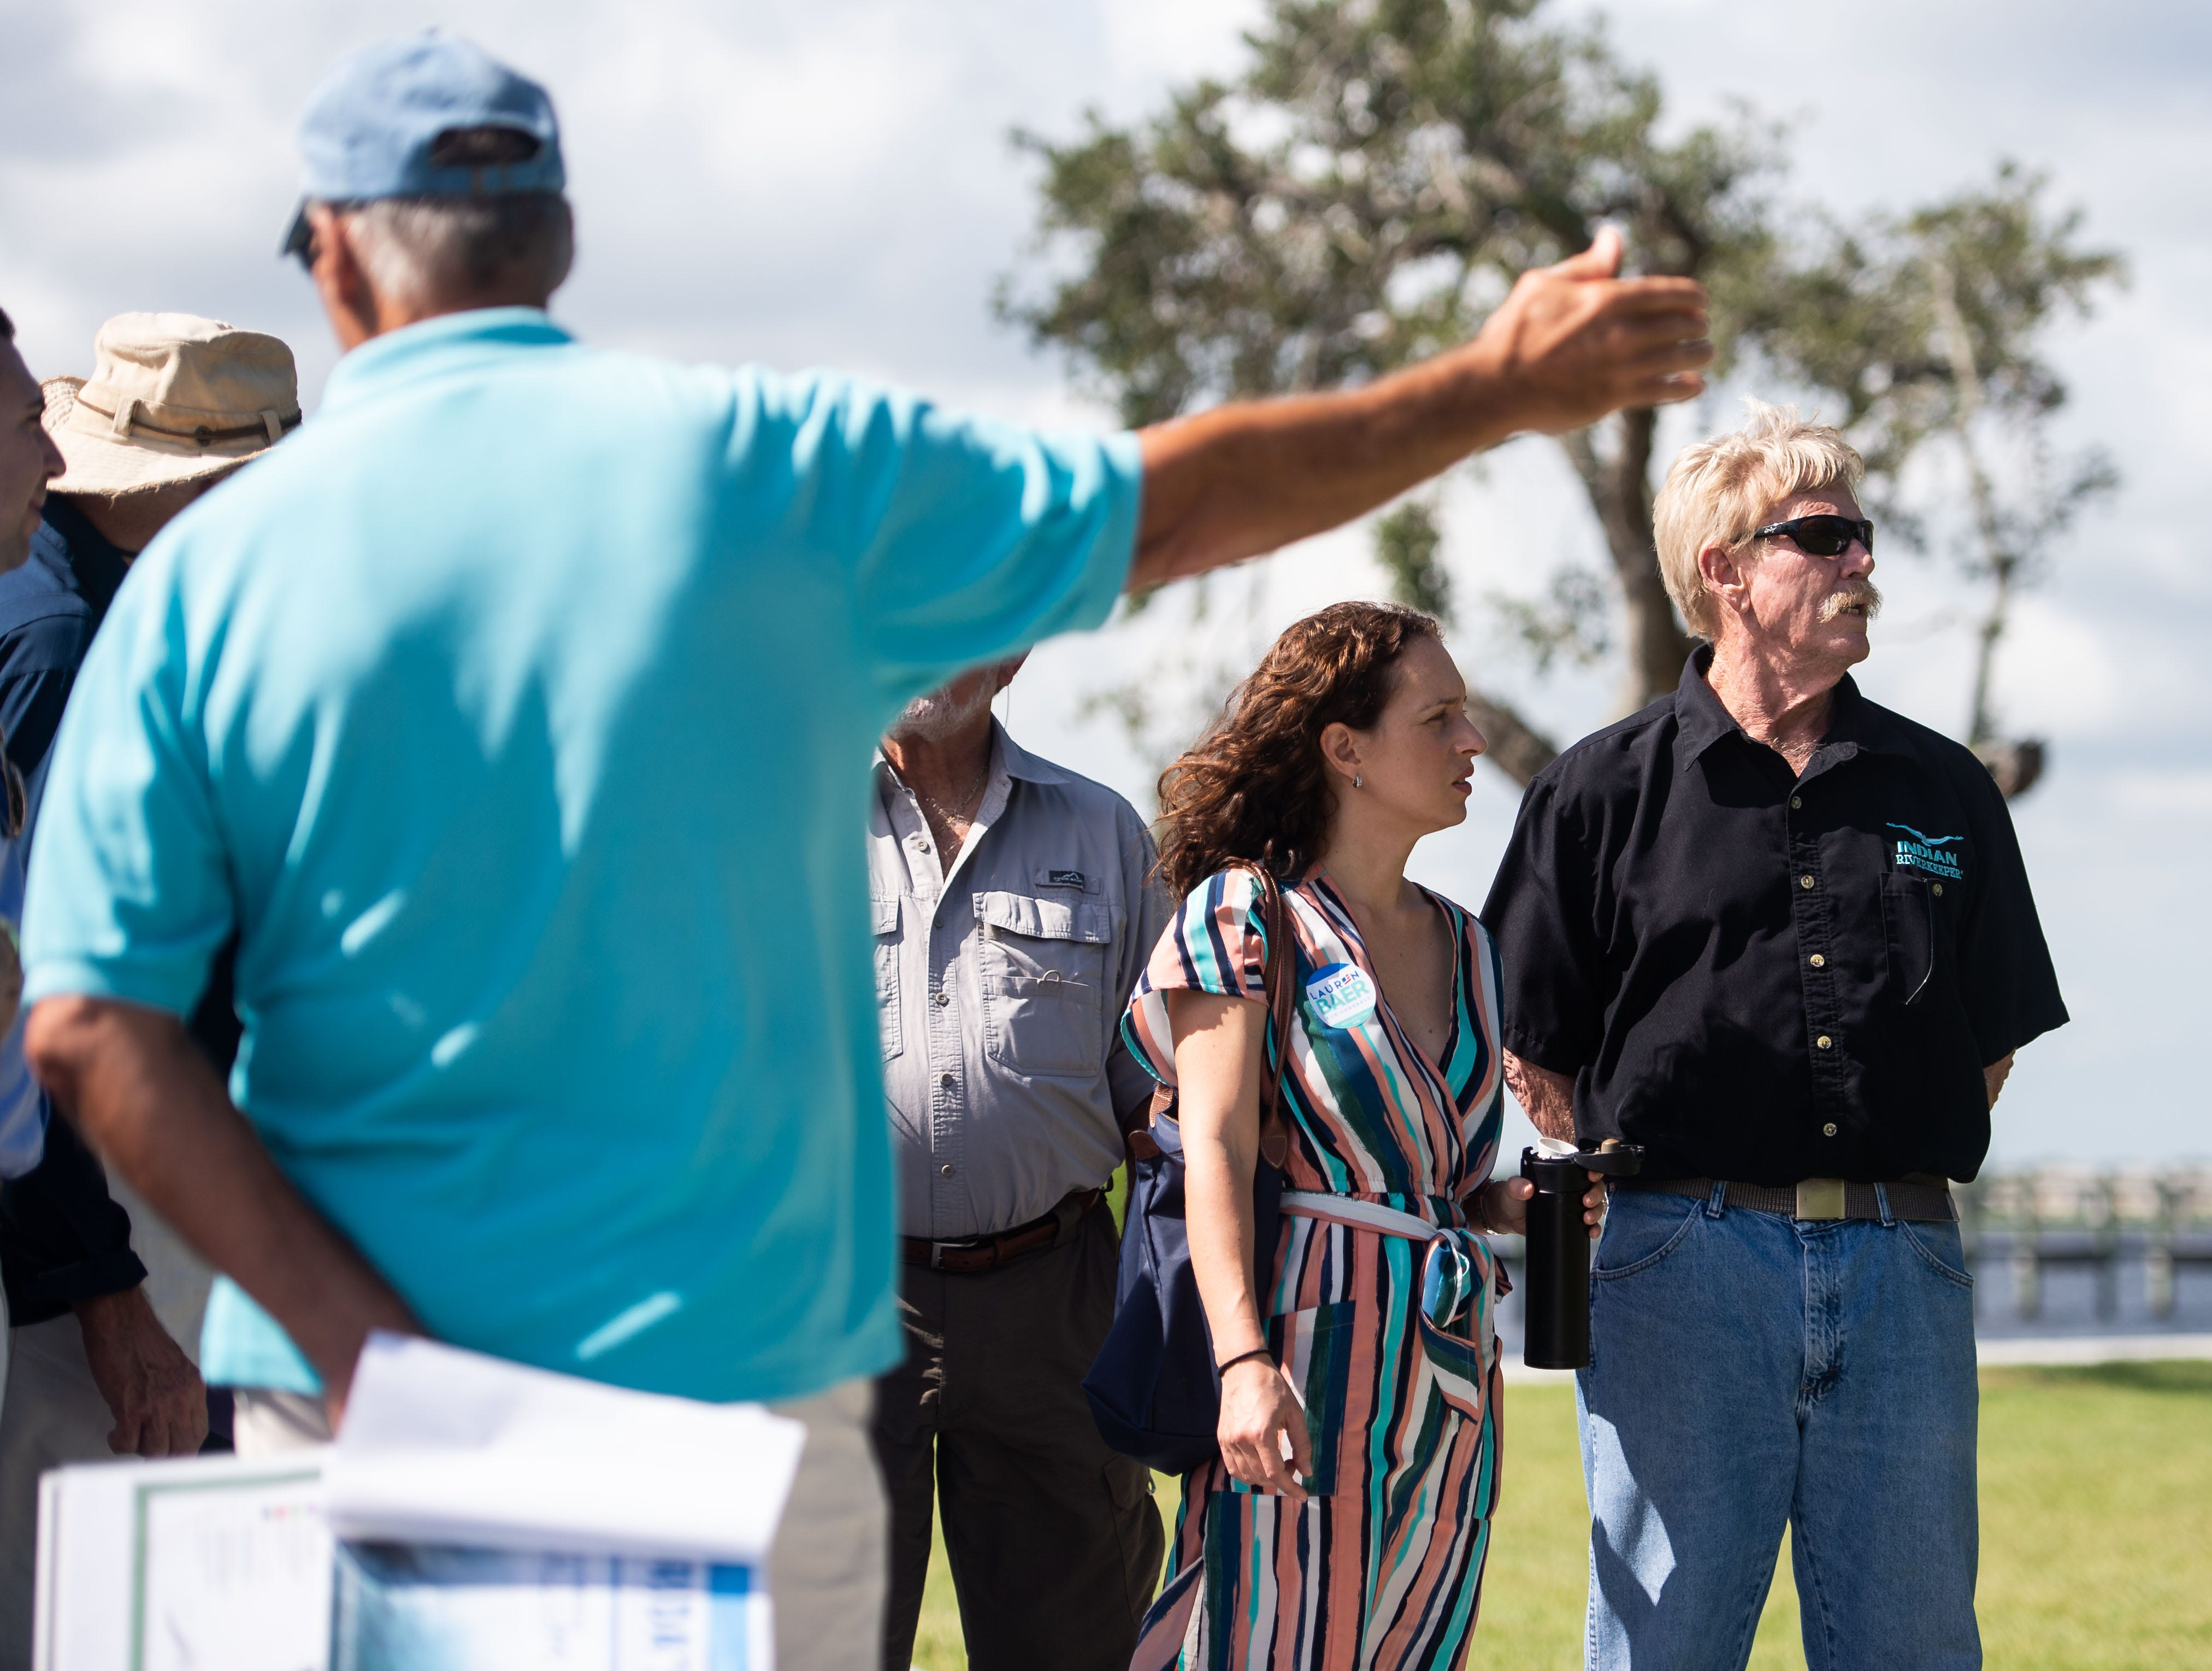 Democratic candidate Lauren Baer (center), who is challenging incumbent U.S. Rep. Brian Mast for his Dist. 18 seat, prepares to meet up with gubernatorial candidate and Tallahassee Mayor Andrew Gillum for a boat tour regarding the blue-green algae crisis on the St. Lucie River on Sunday, Oct. 7, 2018, out of Shepard Park in Stuart.